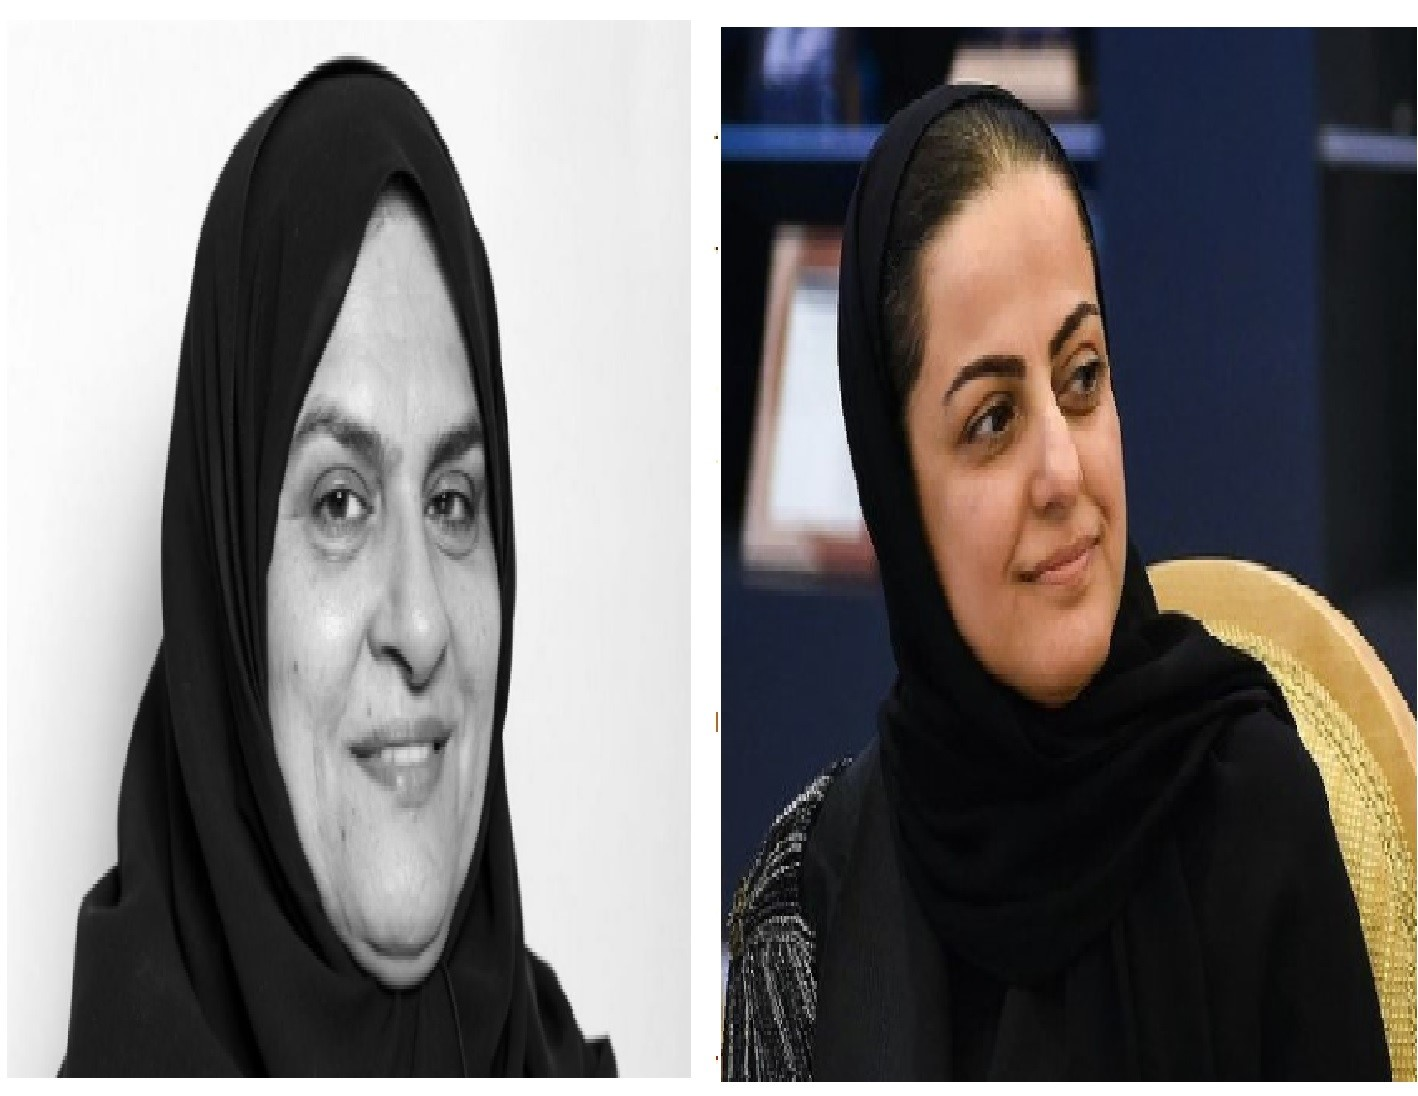 Left, UAE's Raja Easa Al Gurg, first ever Emirati woman appointed to board of HSBC Bank Middle East Limited and right, Rania Nashar with over 20 years of experience in commercial banking sector. Photo Courtesy: Forbes/ Twitter